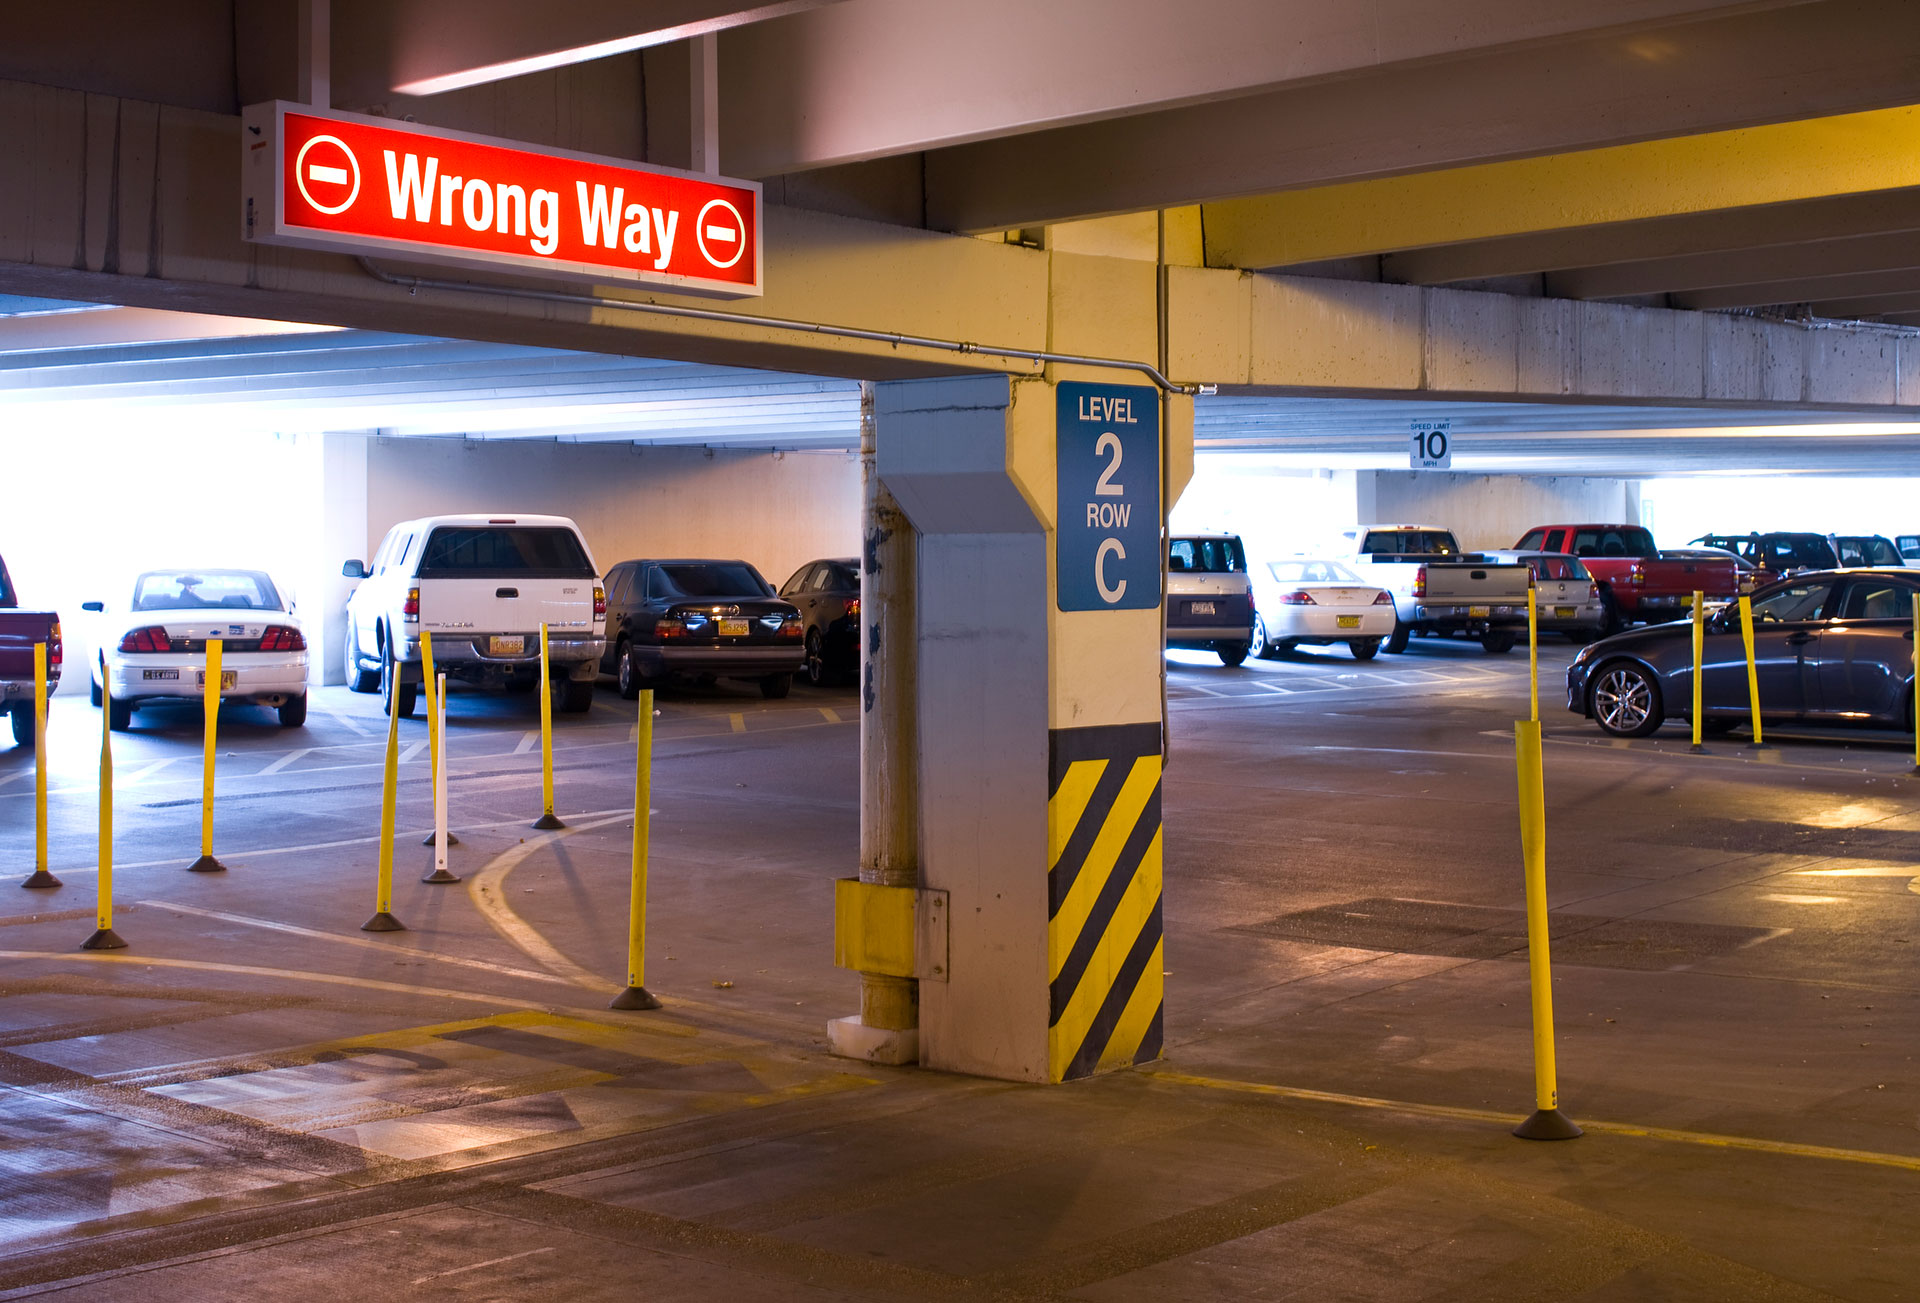 parking garages Downtown has more than 73,000 parking spaces close to all forms of entertainment and was ranked among the most affordable in the country for parking.